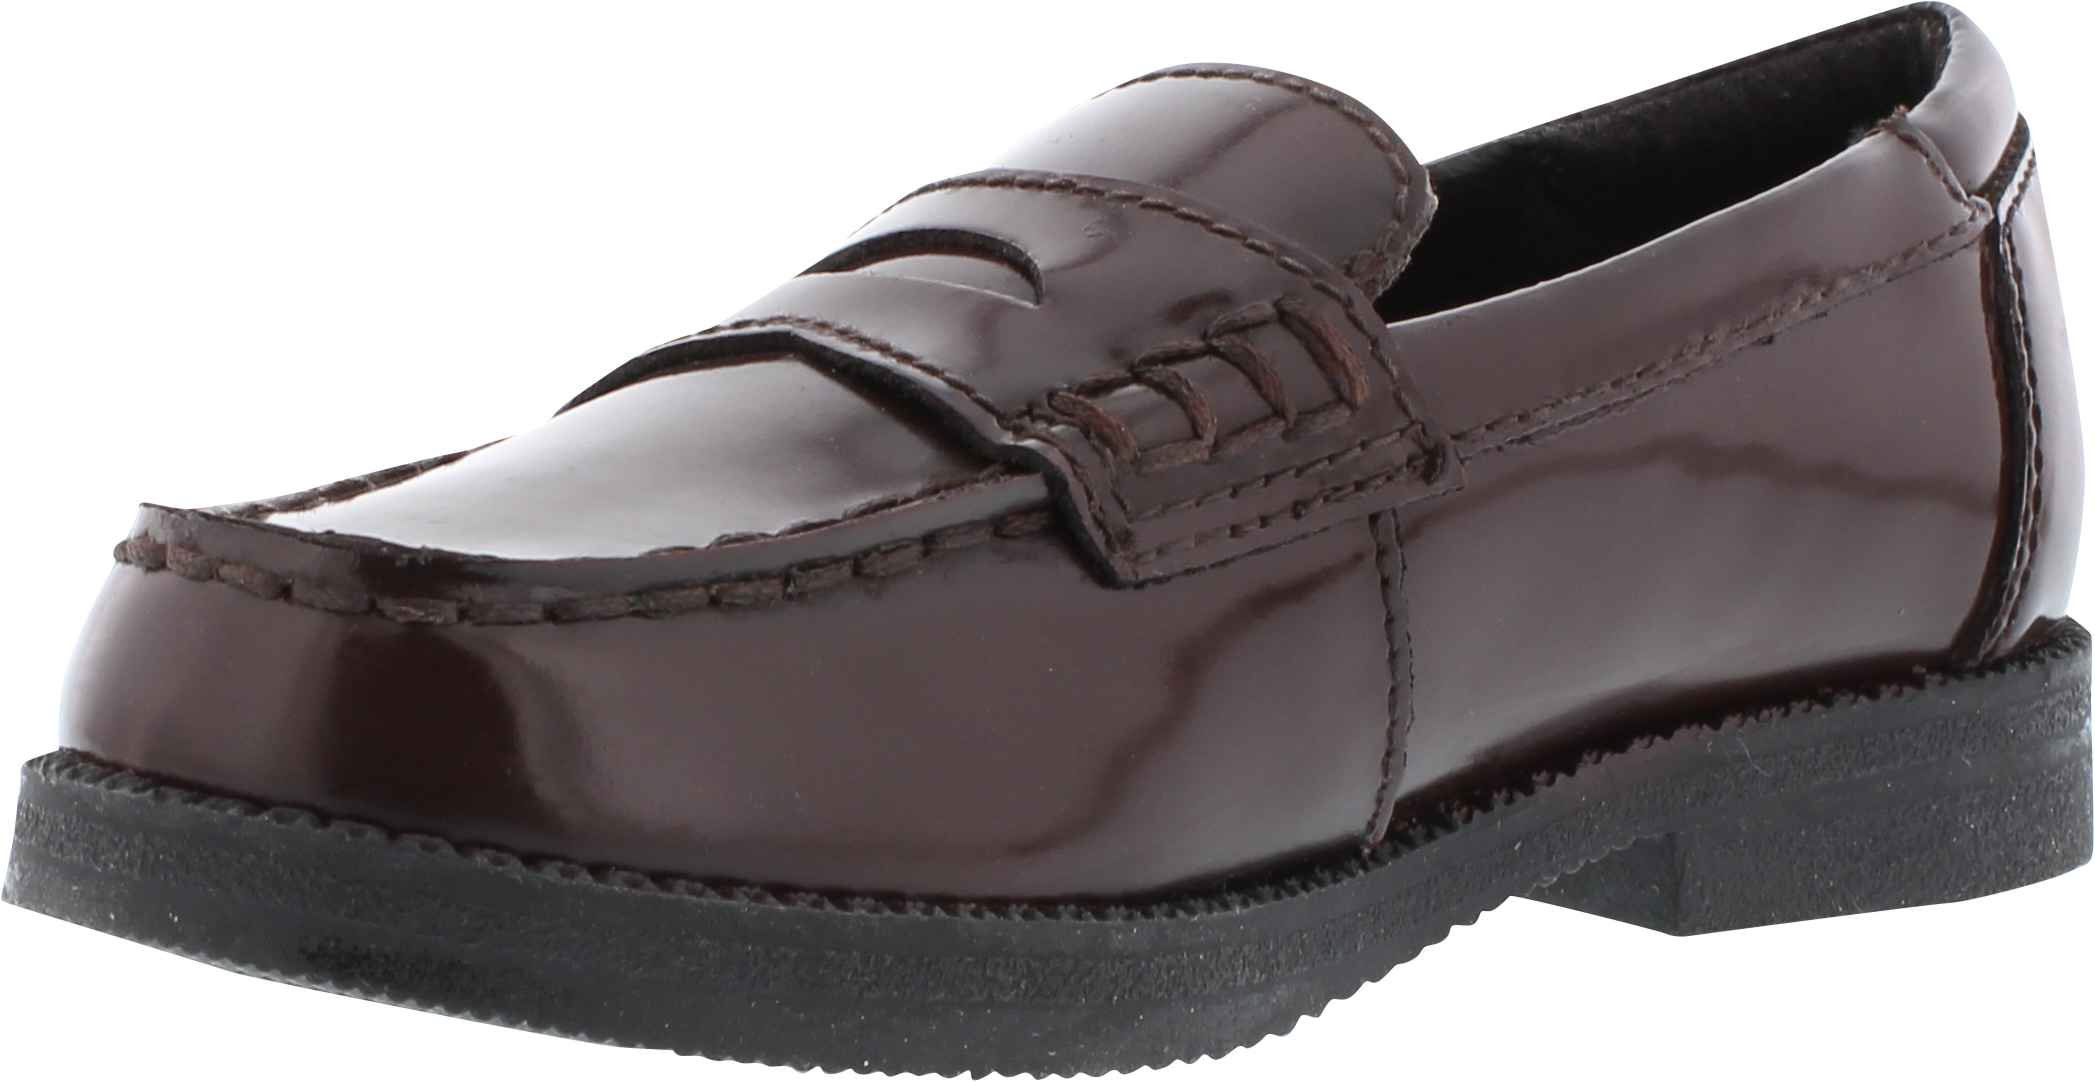 Kenneth Cole REACTION Loaf-er 2 Penny Loafer (Toddler/Little Kid),Burgundy,9.5 M US Toddler